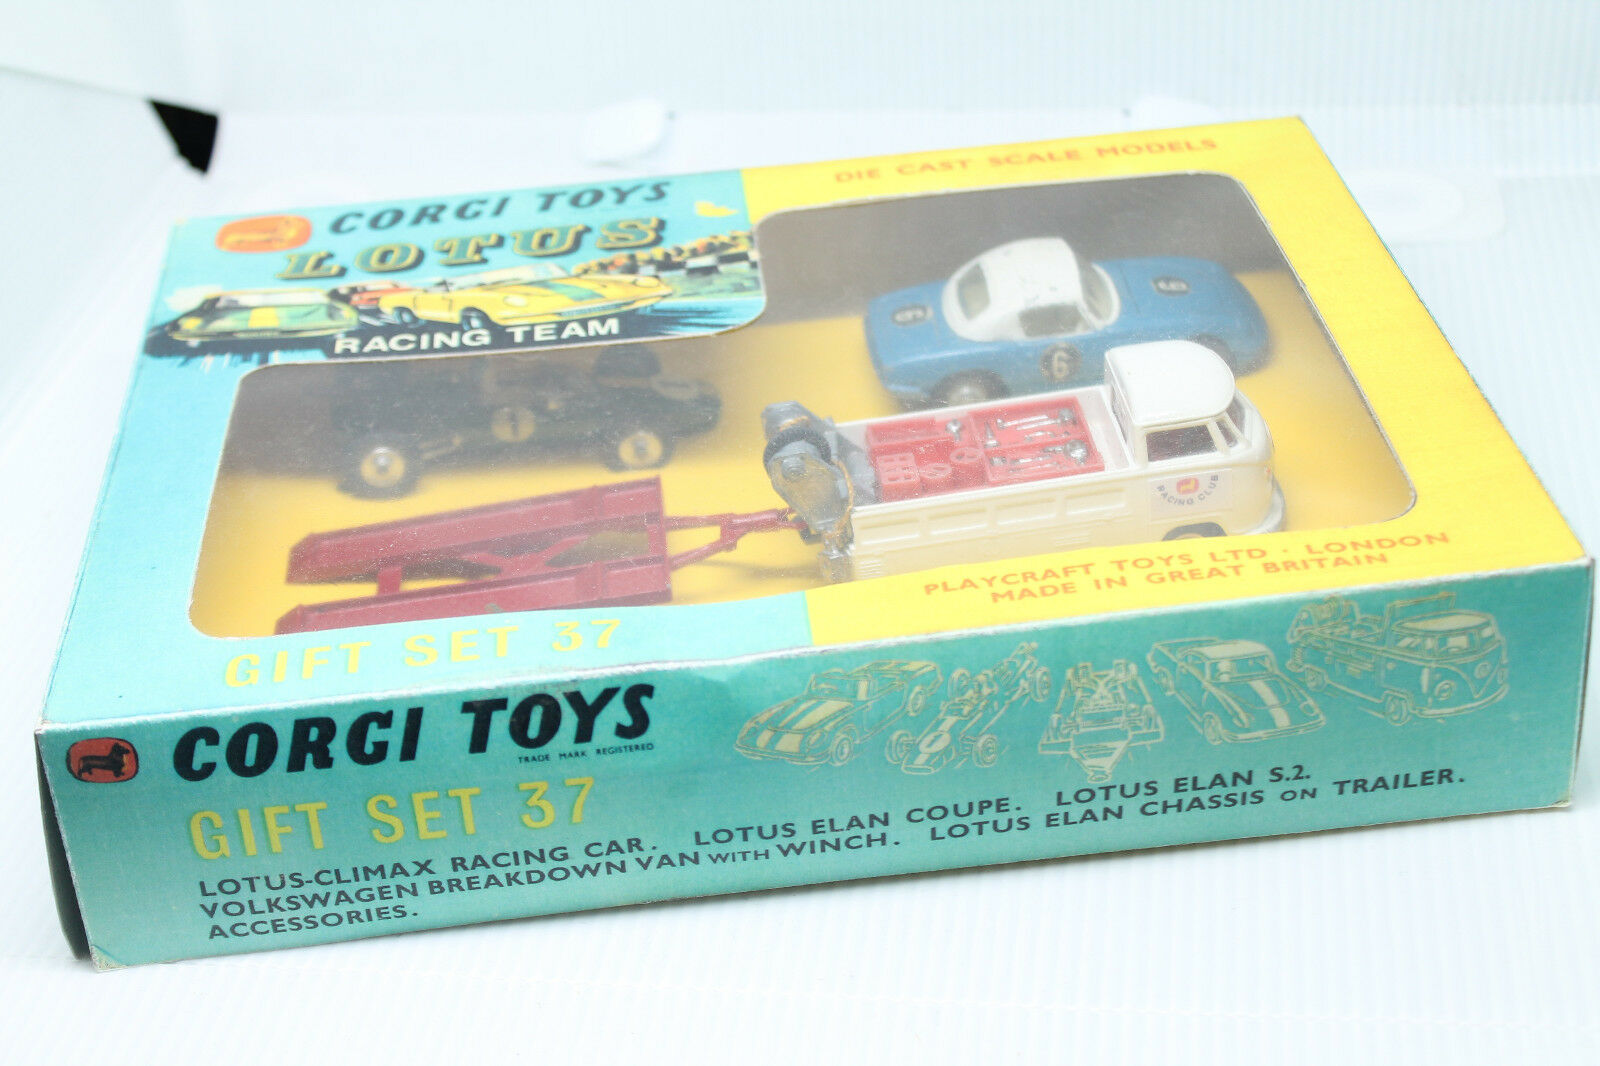 CORGI TOYS  LOTUS Racing Team  Gift Set 37